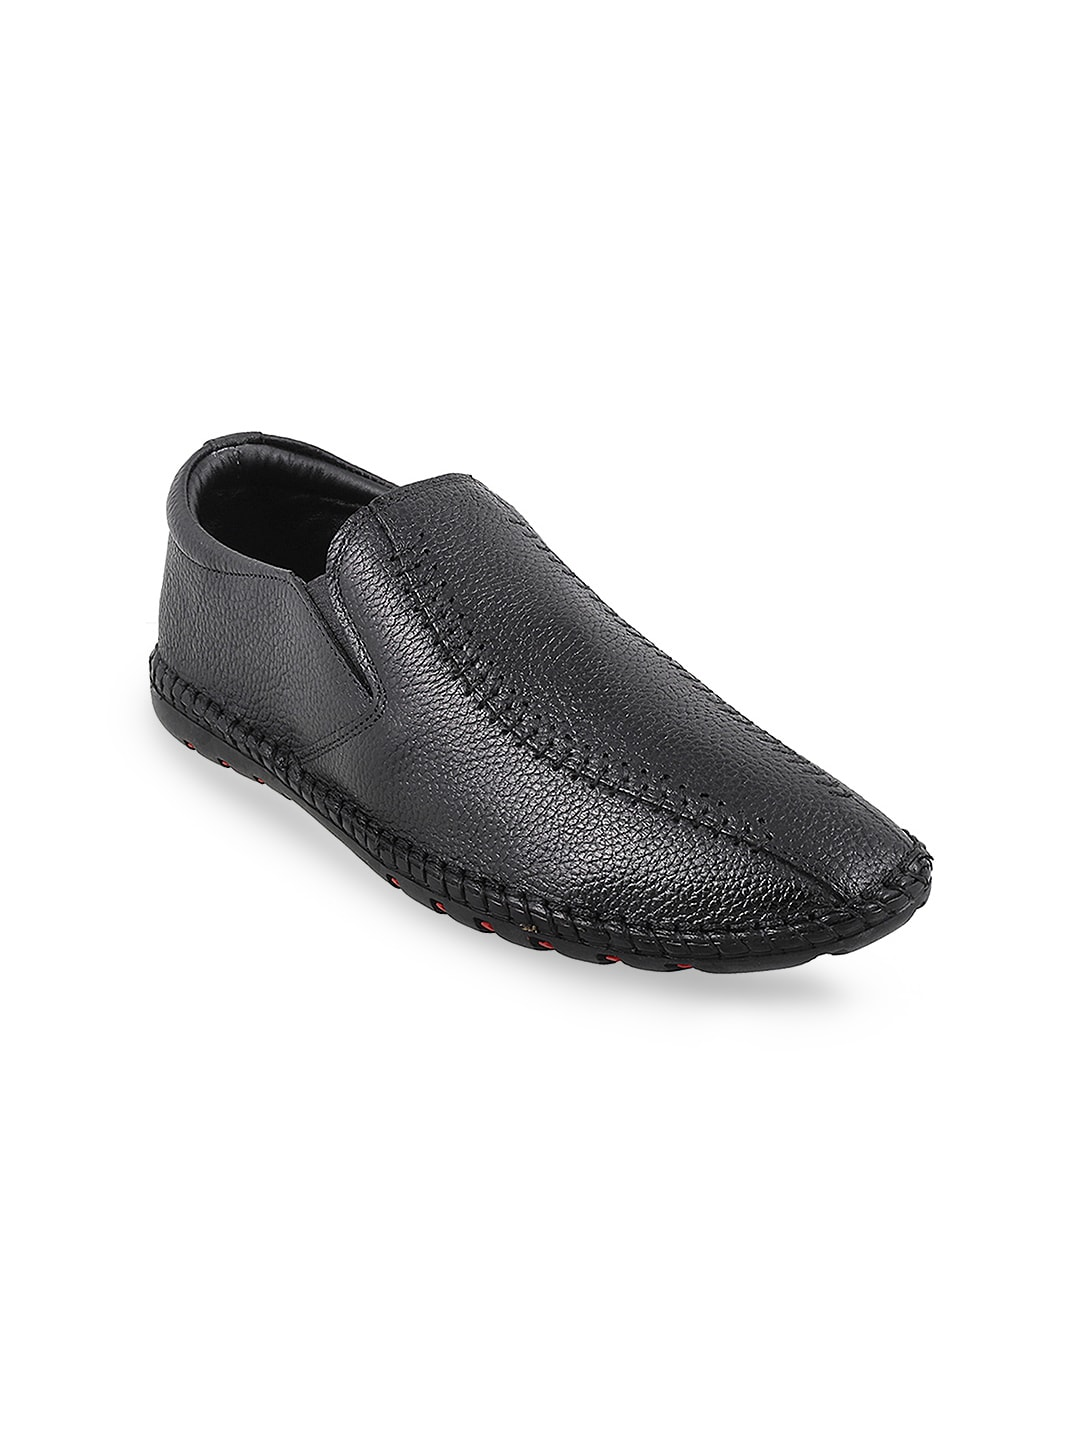 Metro Men Black Textured Leather Slip-Ons image